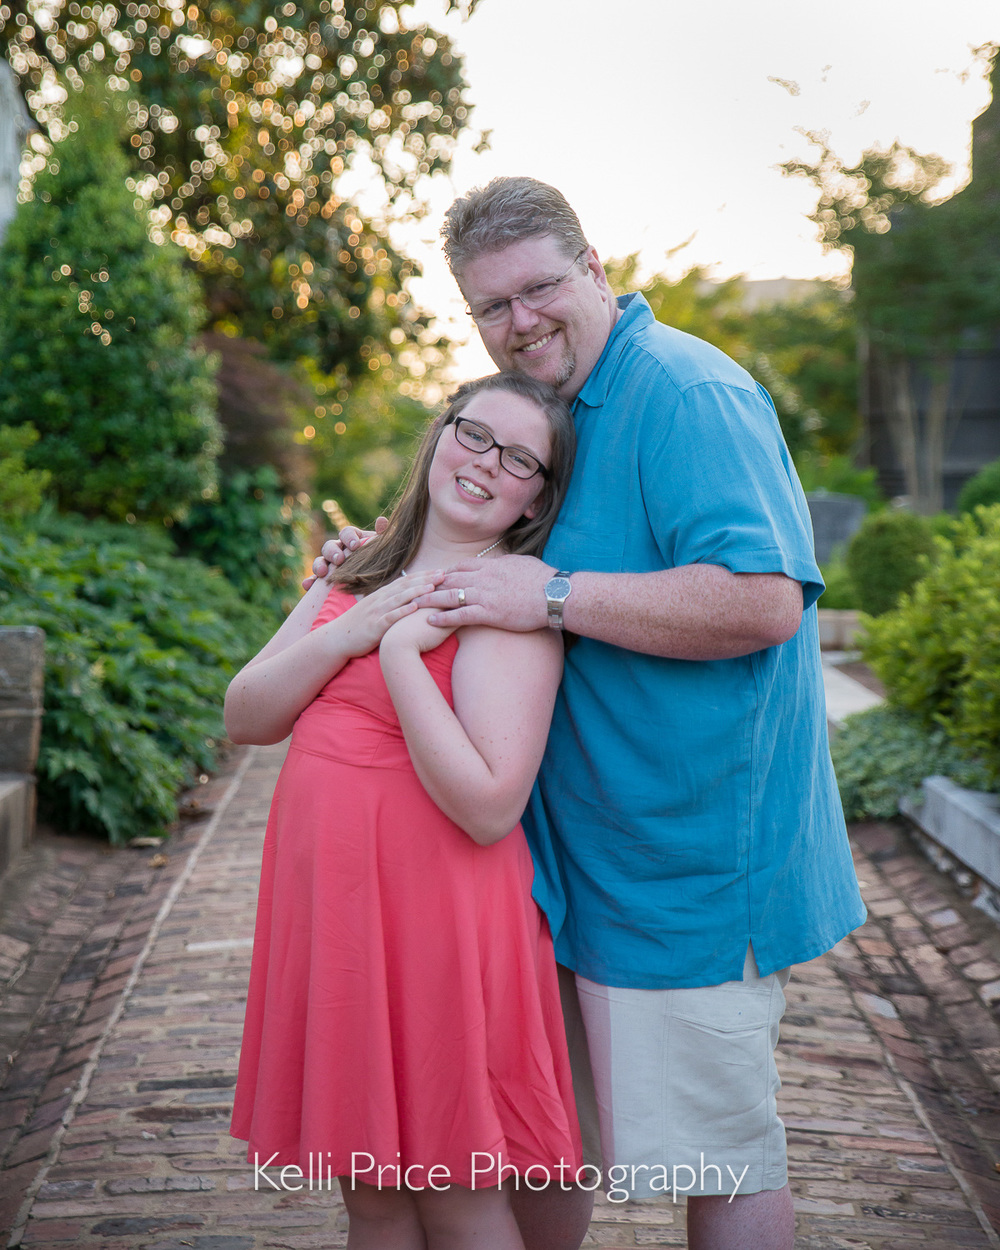 Daddy & Daughter - Atlanta Maternity Photo Session - Historic Oakland Cemetery, GA